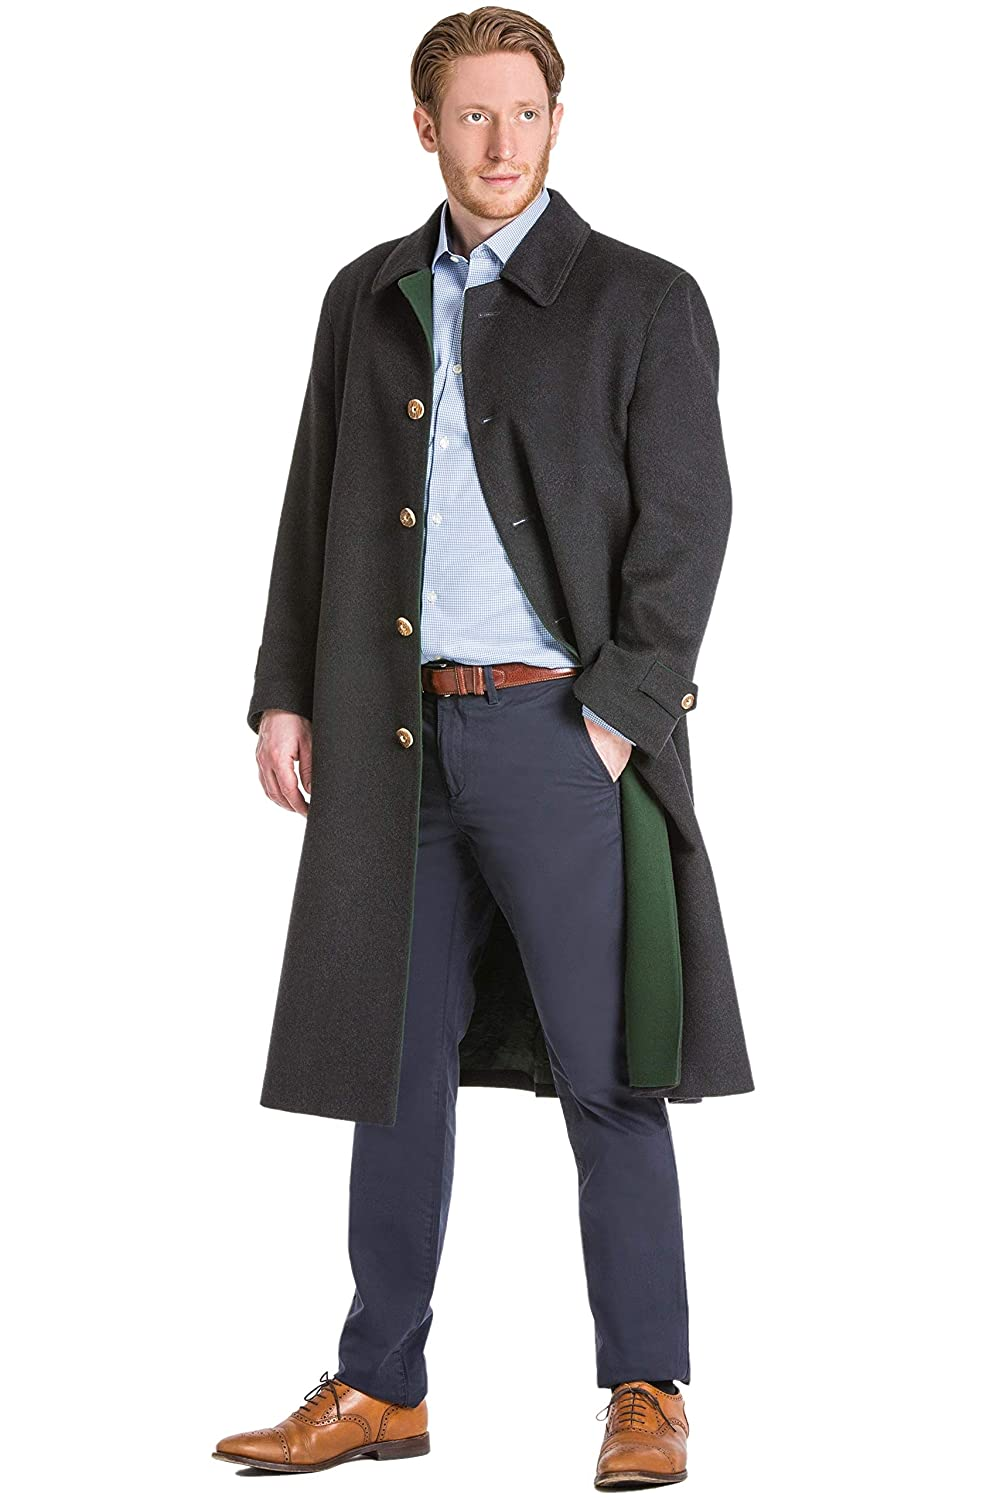 a88aae710 Shiver No More Classic Austrian Loden Wool Overcoat at Amazon Men's ...